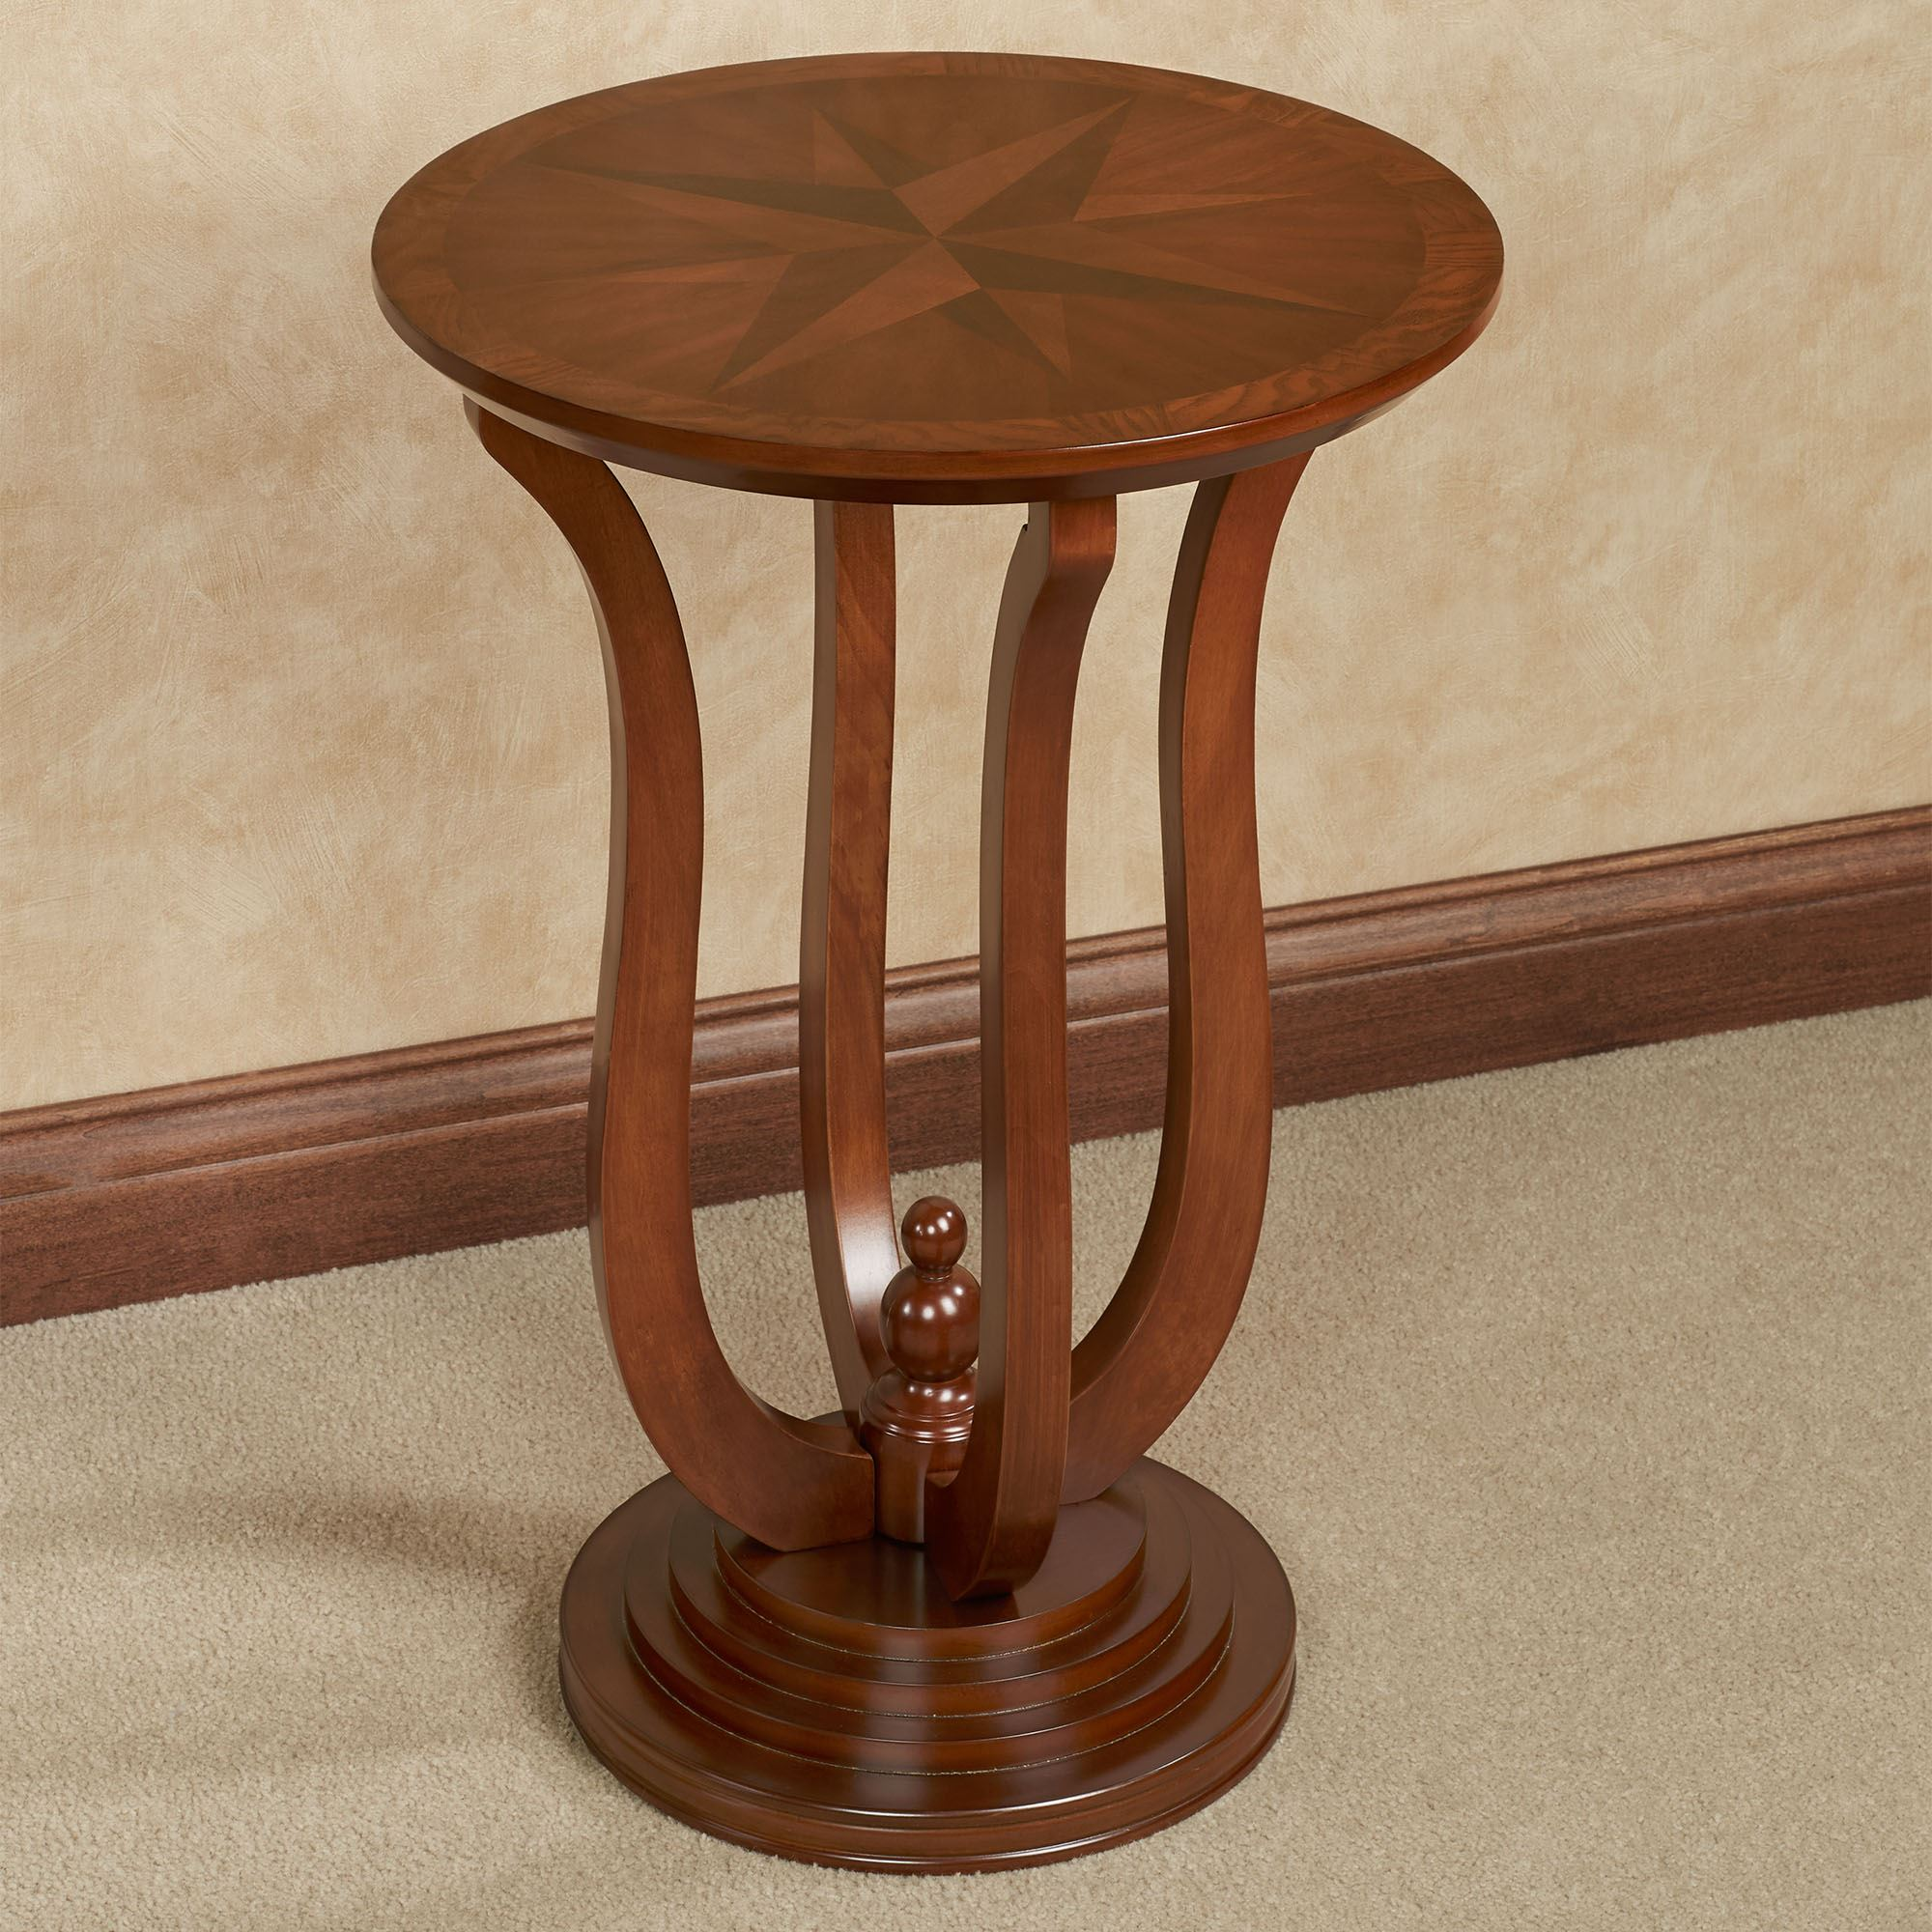 - Ethan Autumn Cherry Finished Round Wooden Accent Table With